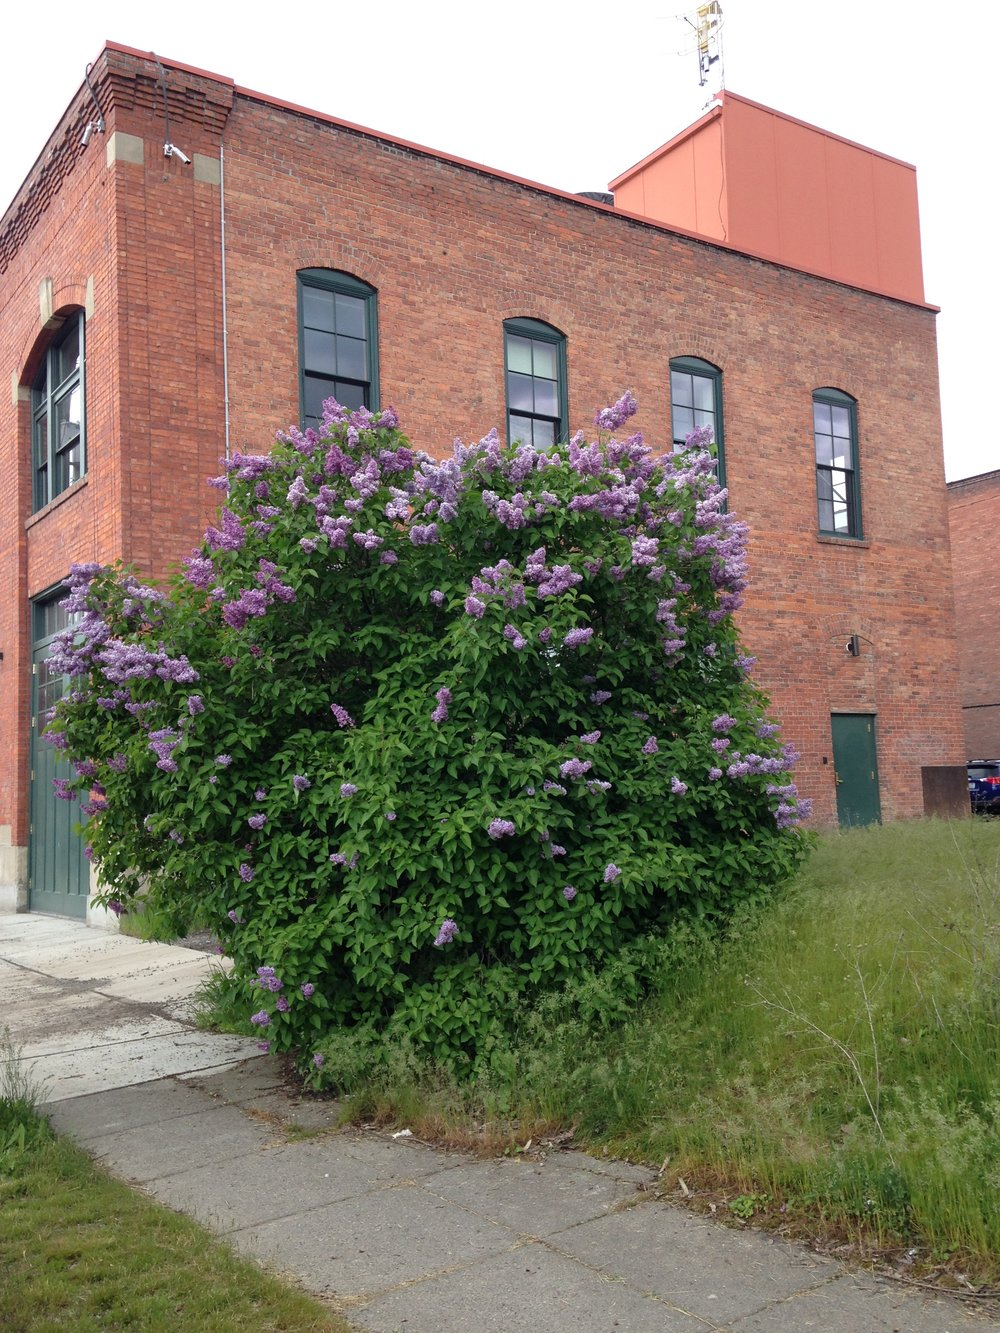 This lilac is across the street from Spokane Art Supply (a place I visit a lot!) and behind the Spokane Public Radio station.